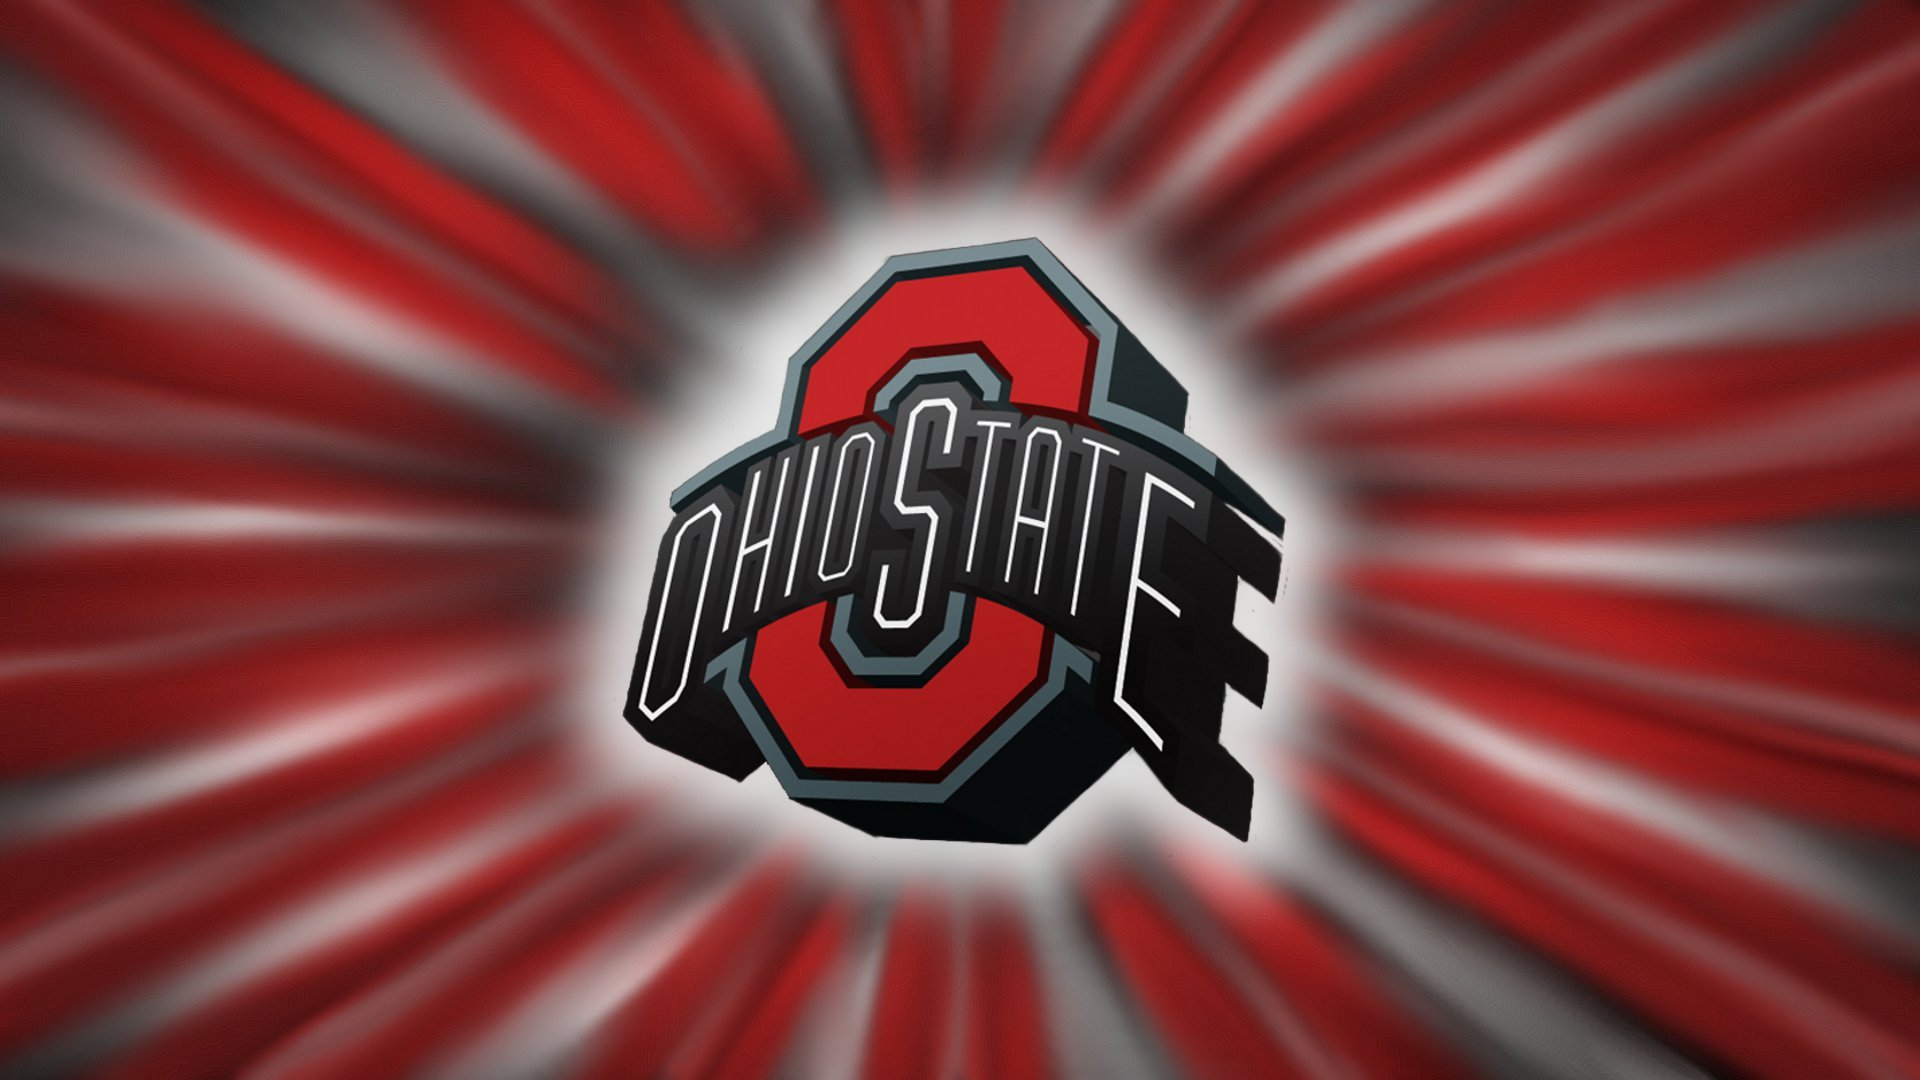 how to get into a iphone with a password ohio state pictures wallpapers wallpapersafari 21362